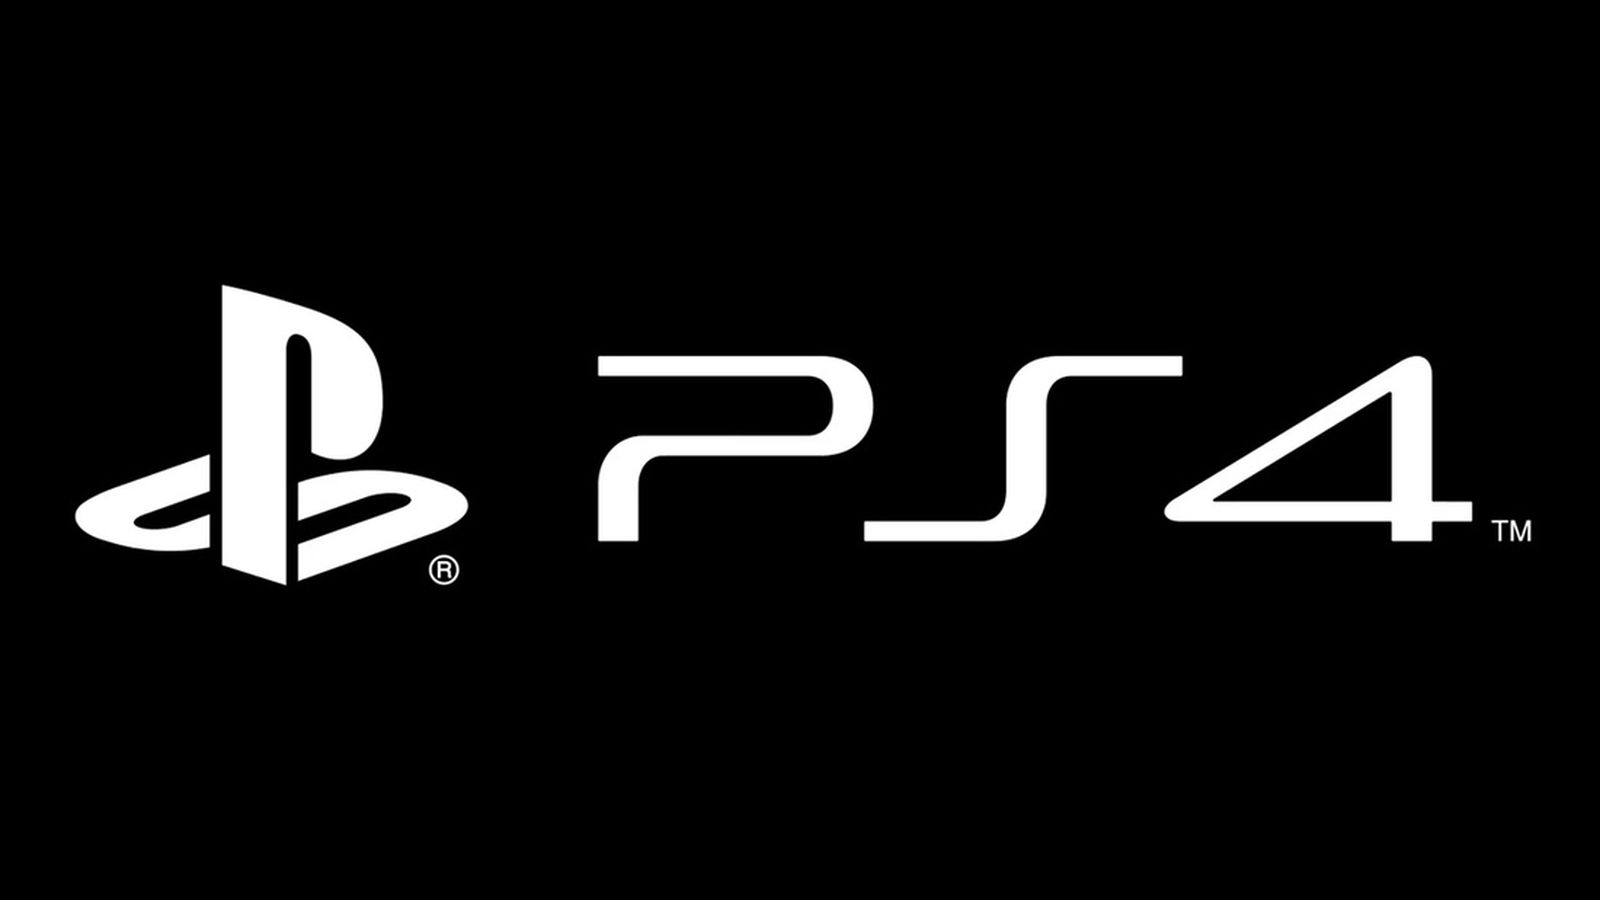 Sony's timing for PS4 was perfect, EEDAR says - Polygon